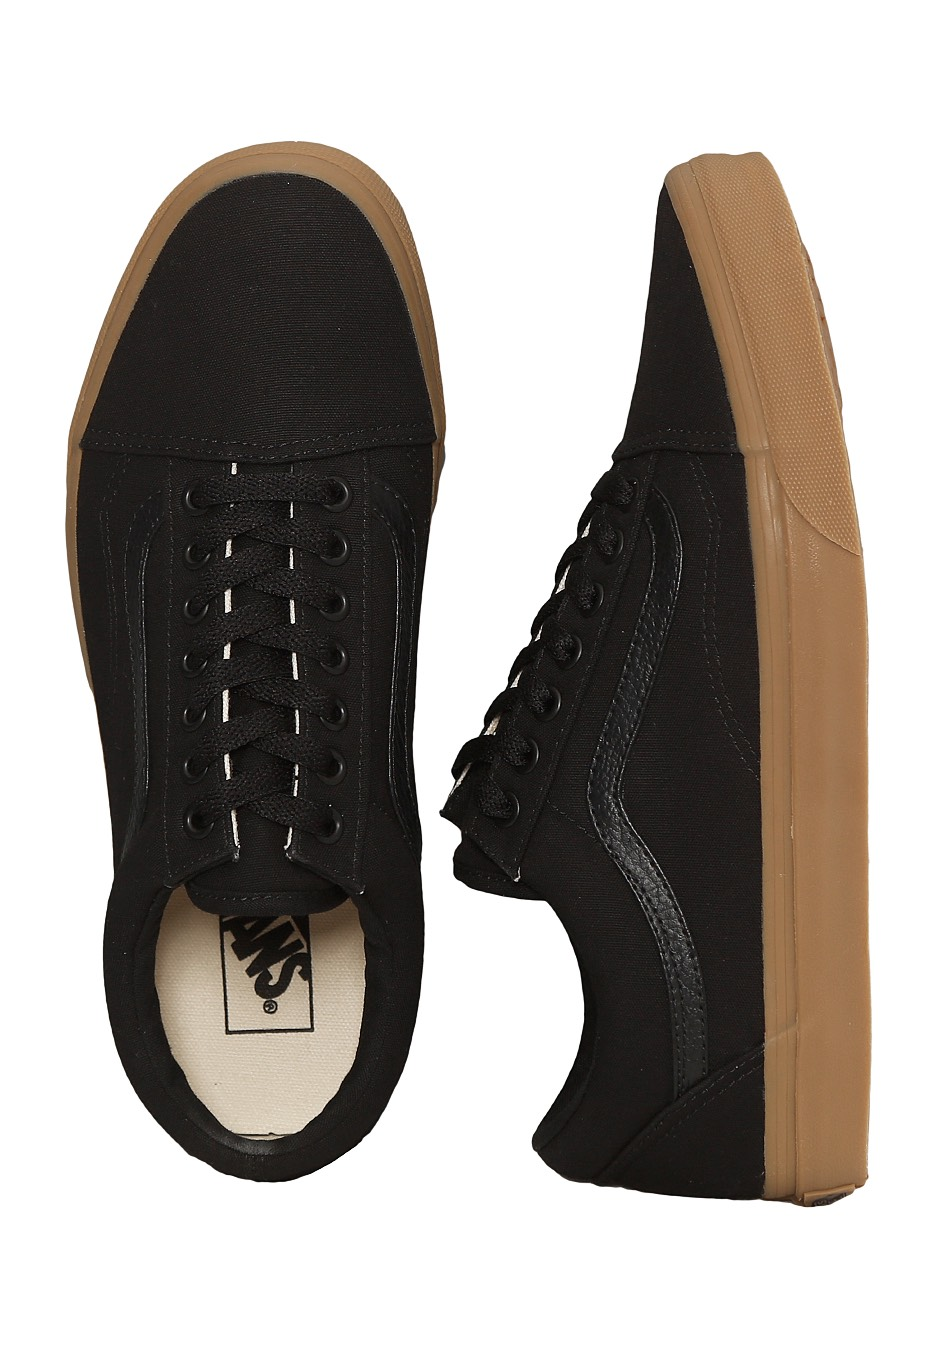 831c064d4644c1 Vans - Old Skool Canvas Gum Black Light Gum - Shoes - Impericon.com  Worldwide